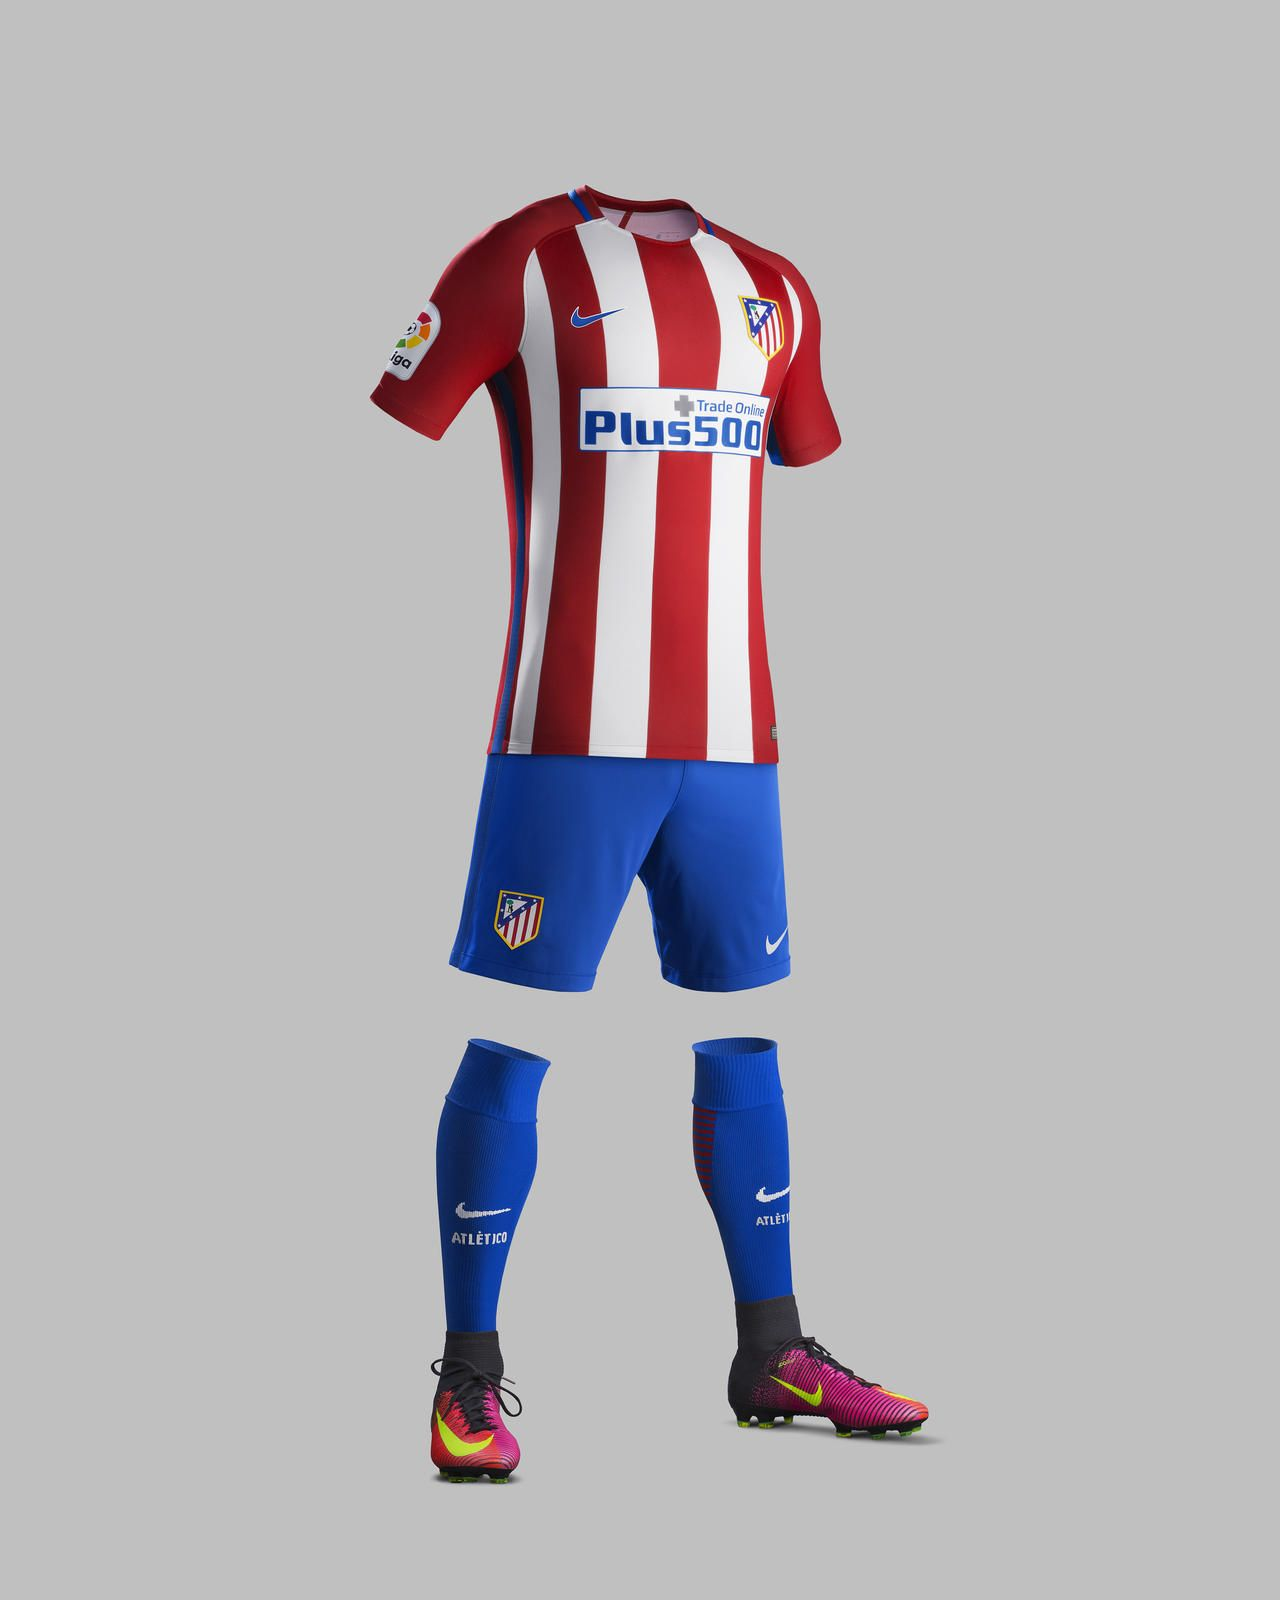 Camisas do Atlético de Madrid 2016-2017 Nike kit 72ad06ff87eb9